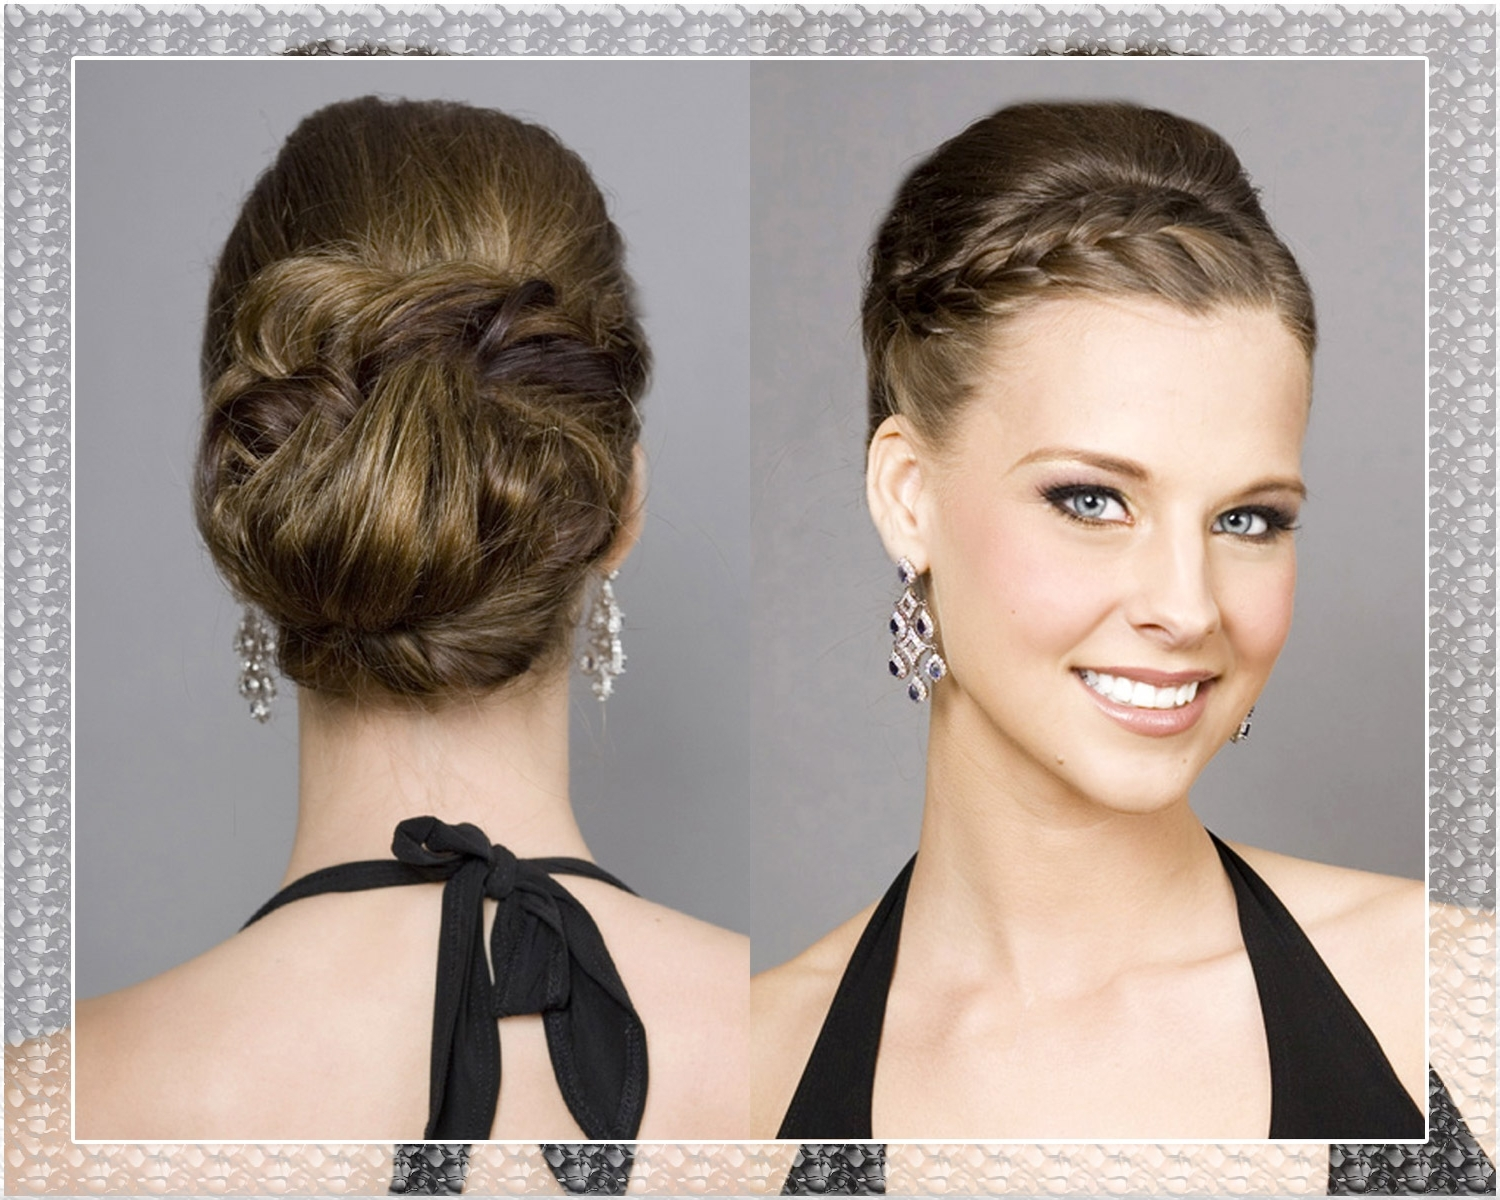 Braided Hairstyles Gallery 2018 — Braided Hairstyles Gallery 2018 With Latest Messy Loosely Braided Side Downdo (View 5 of 15)